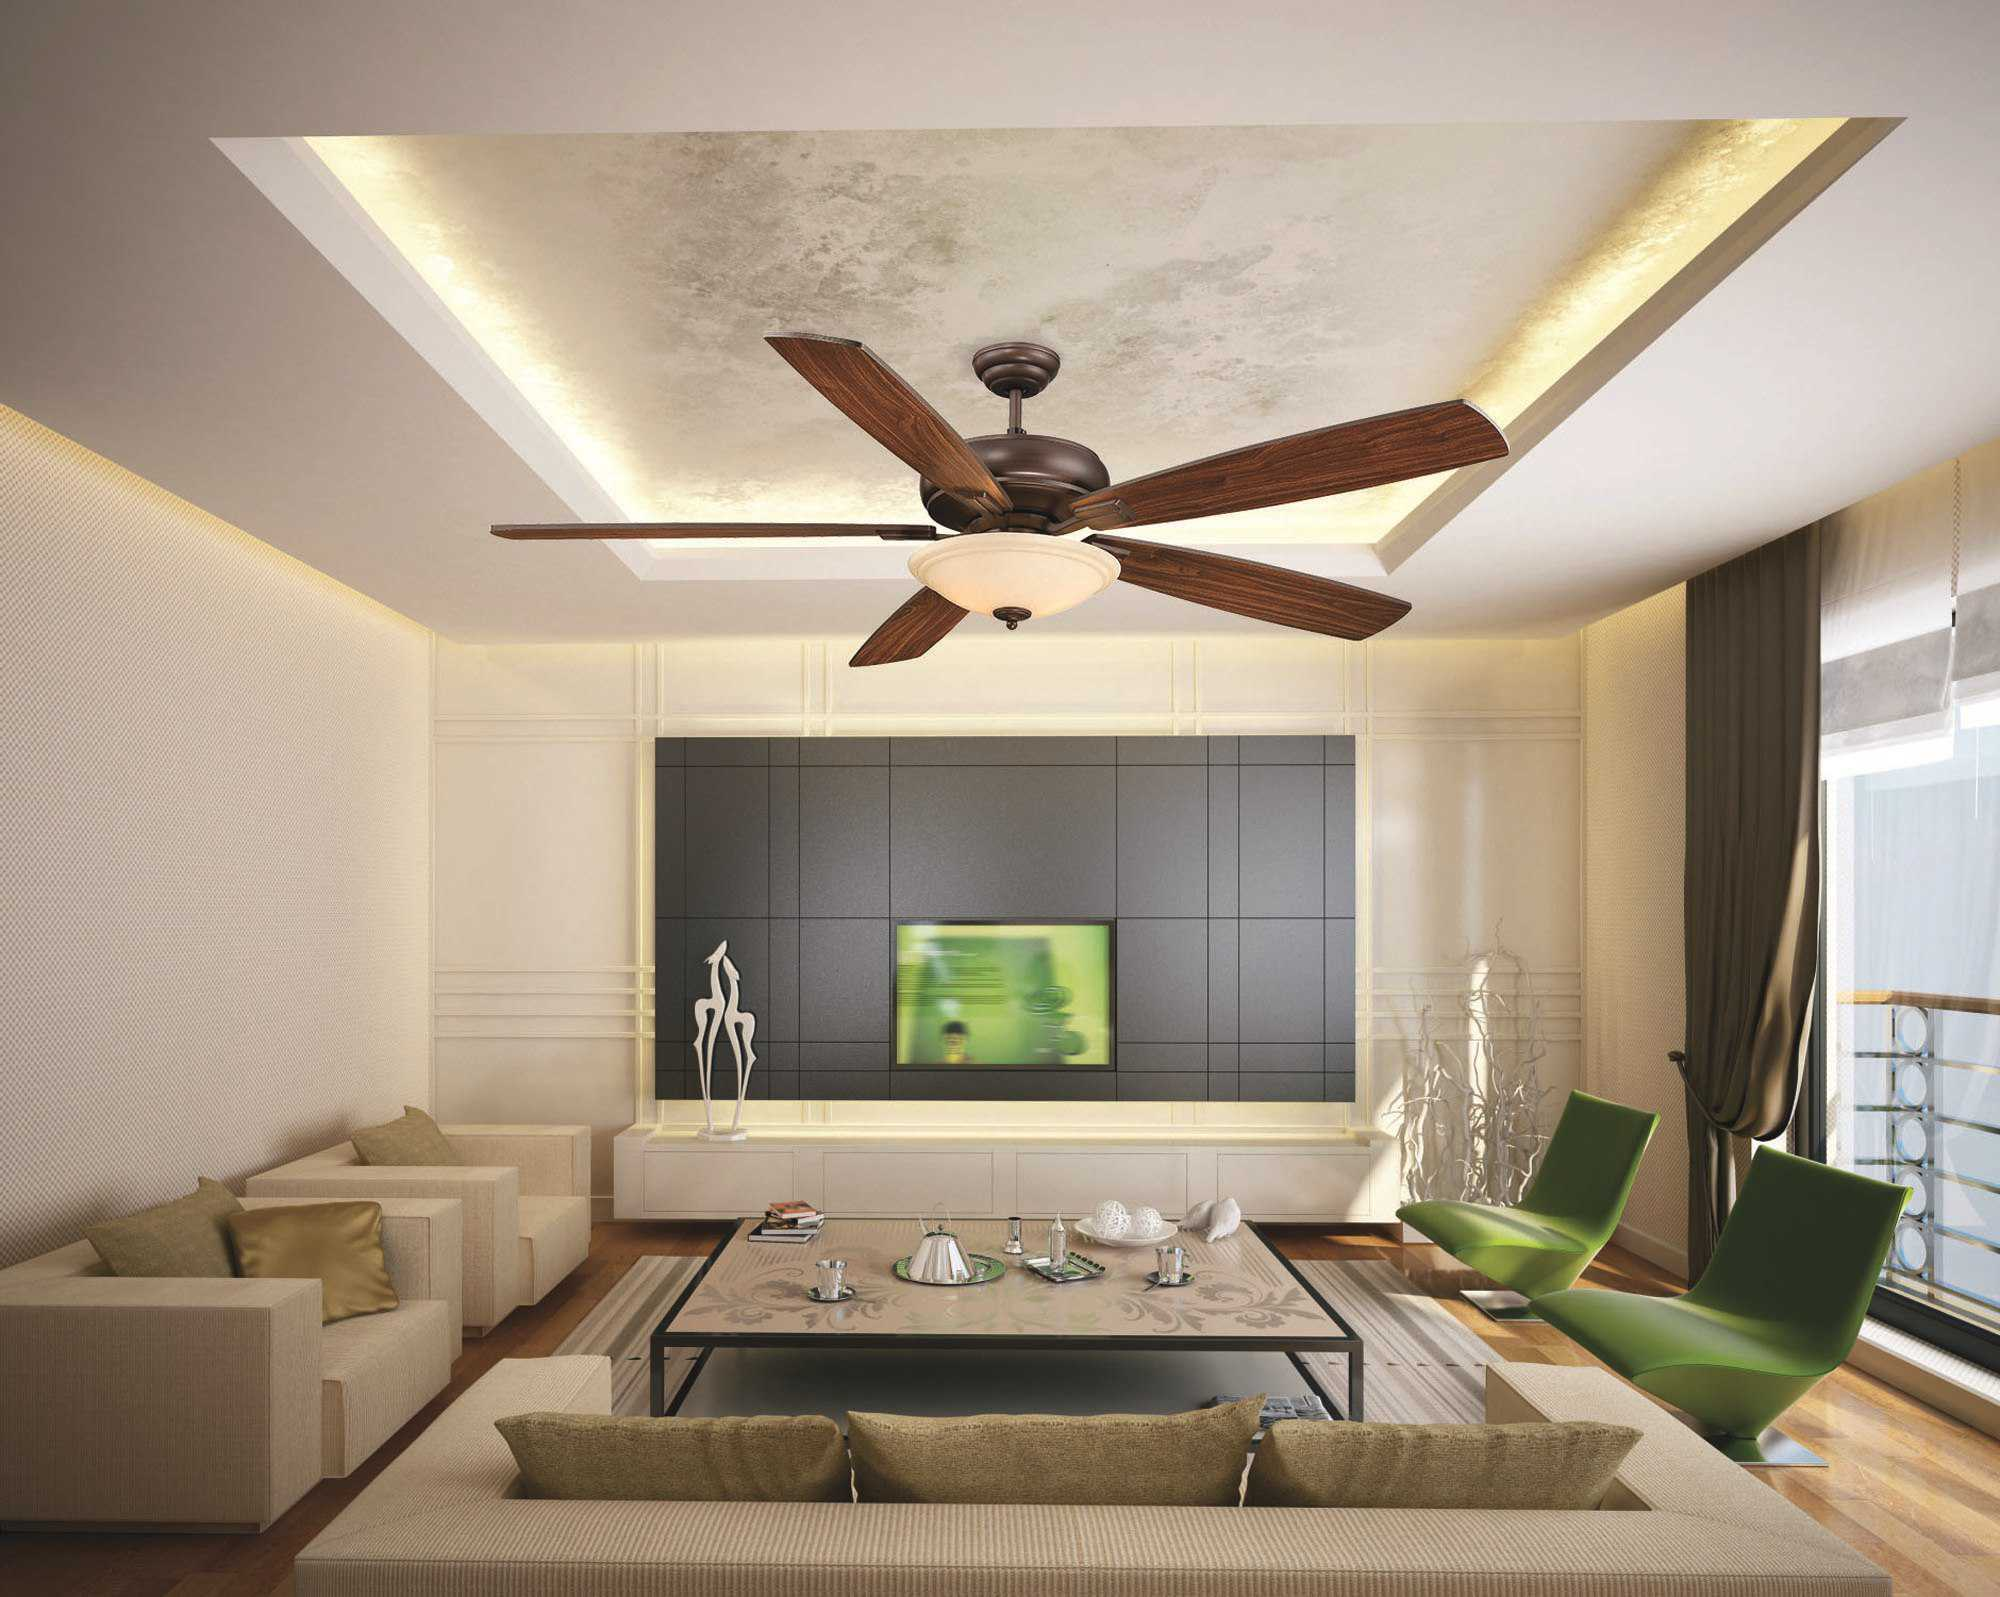 Ceiling fan buying guide luxedecor there are many benefits in incorporating a ceiling fan into your home ceiling fans effectively circulate air to create healthy airflow which is both mozeypictures Image collections